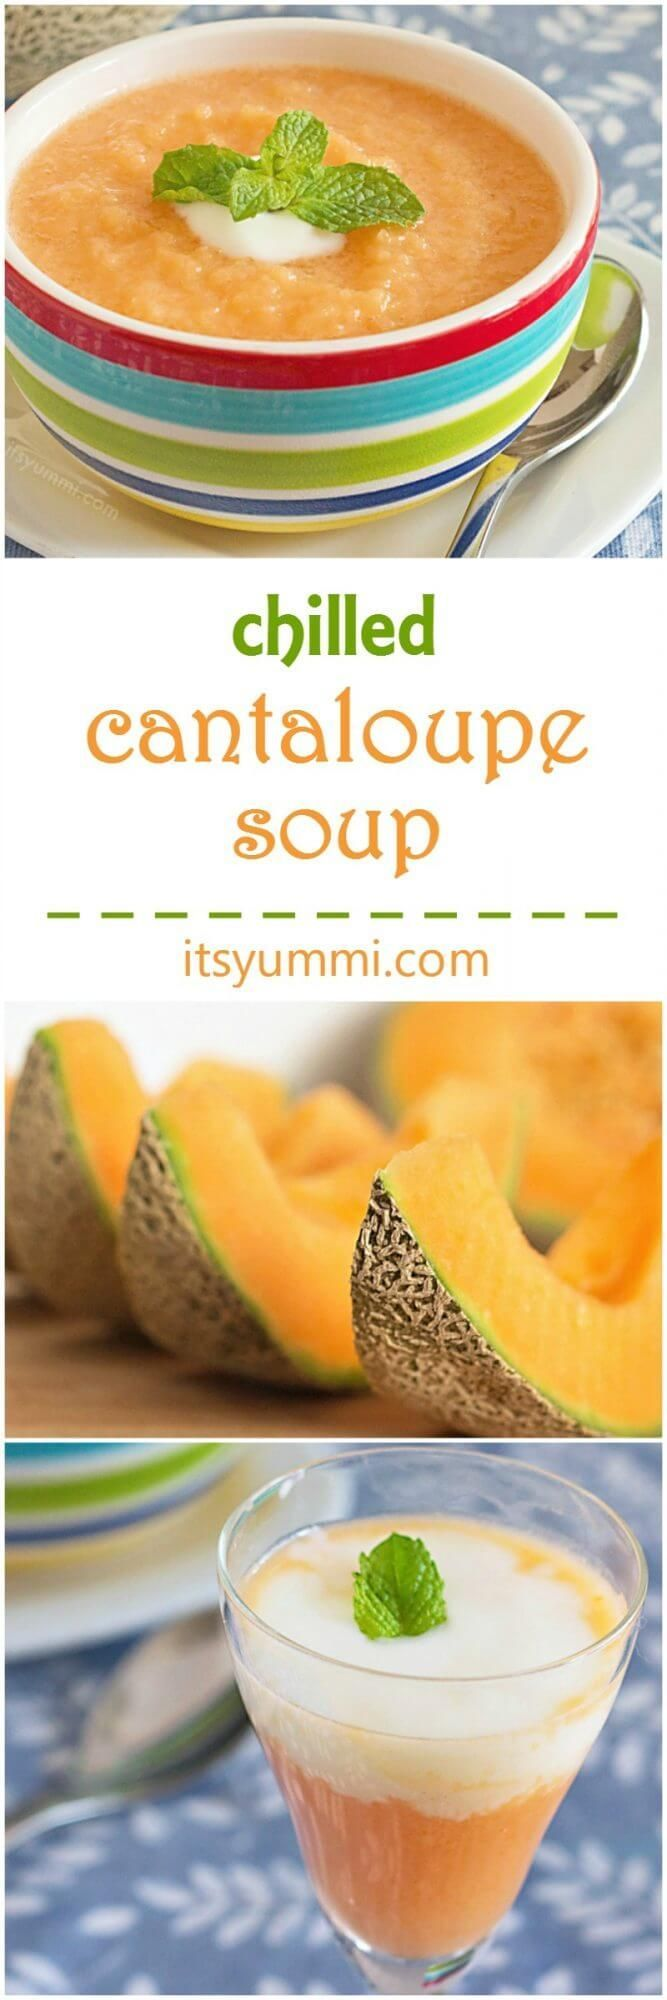 Stay cool this summer with this chilled cantaloupe soup recipe! Featuring Greek yogurt, cantaloupe, mango, ginger, and mint. it's a healthy lunch…